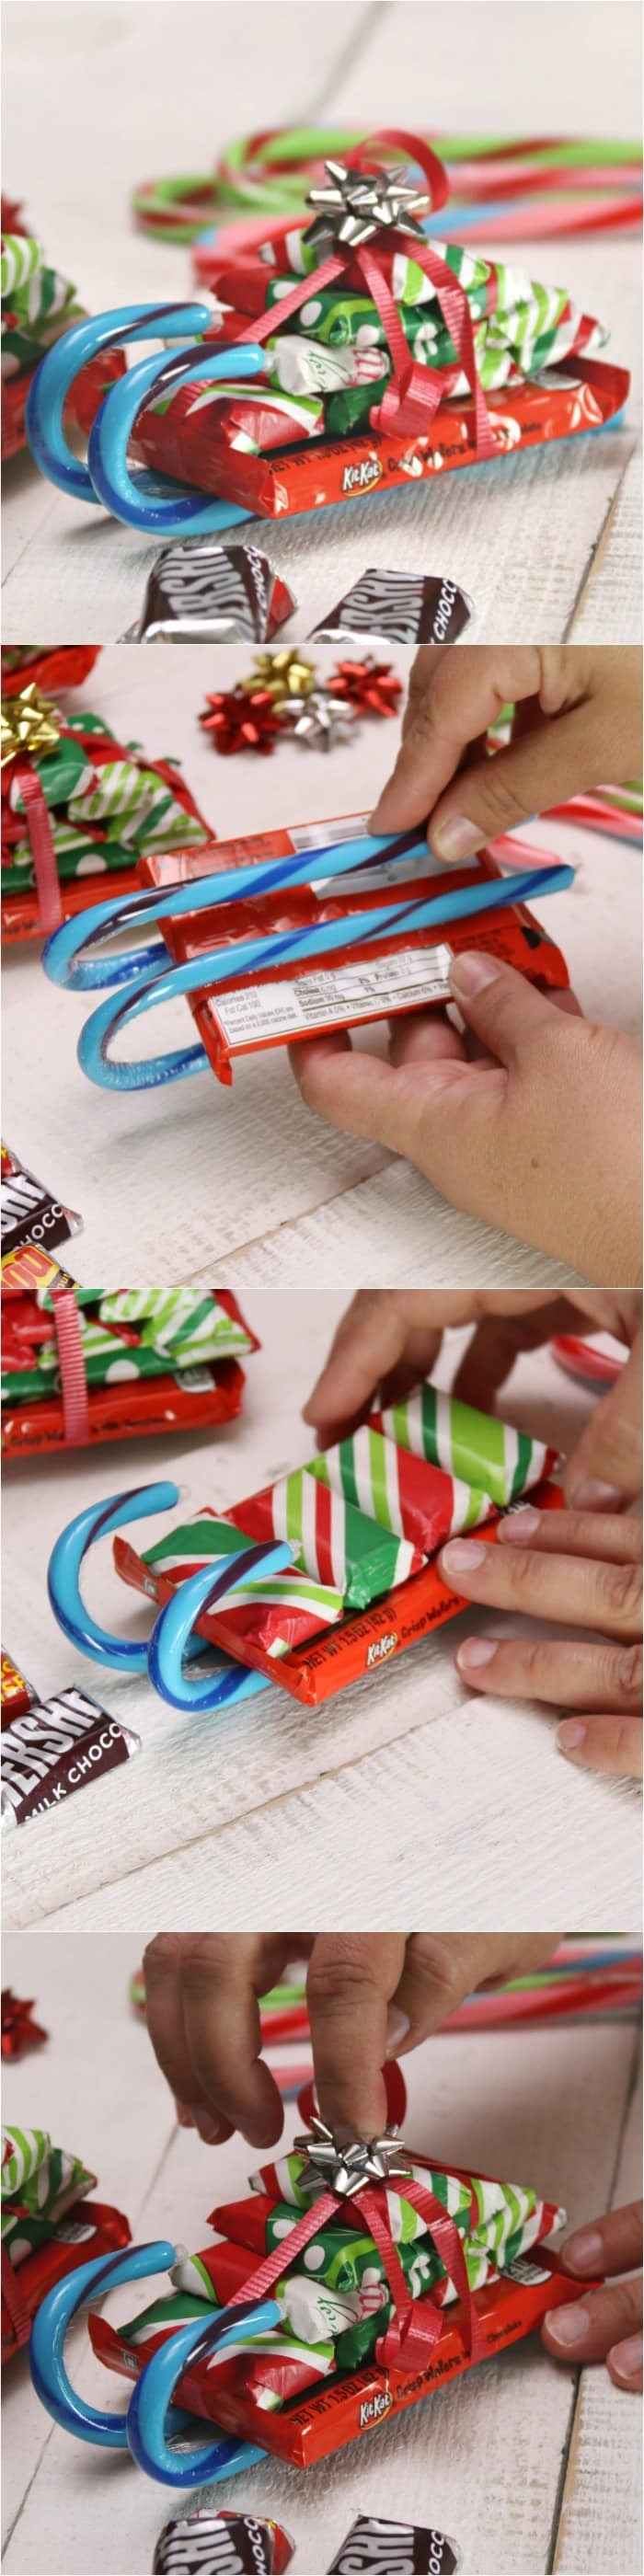 Easy Candy Bars - DIY Christmas crafts